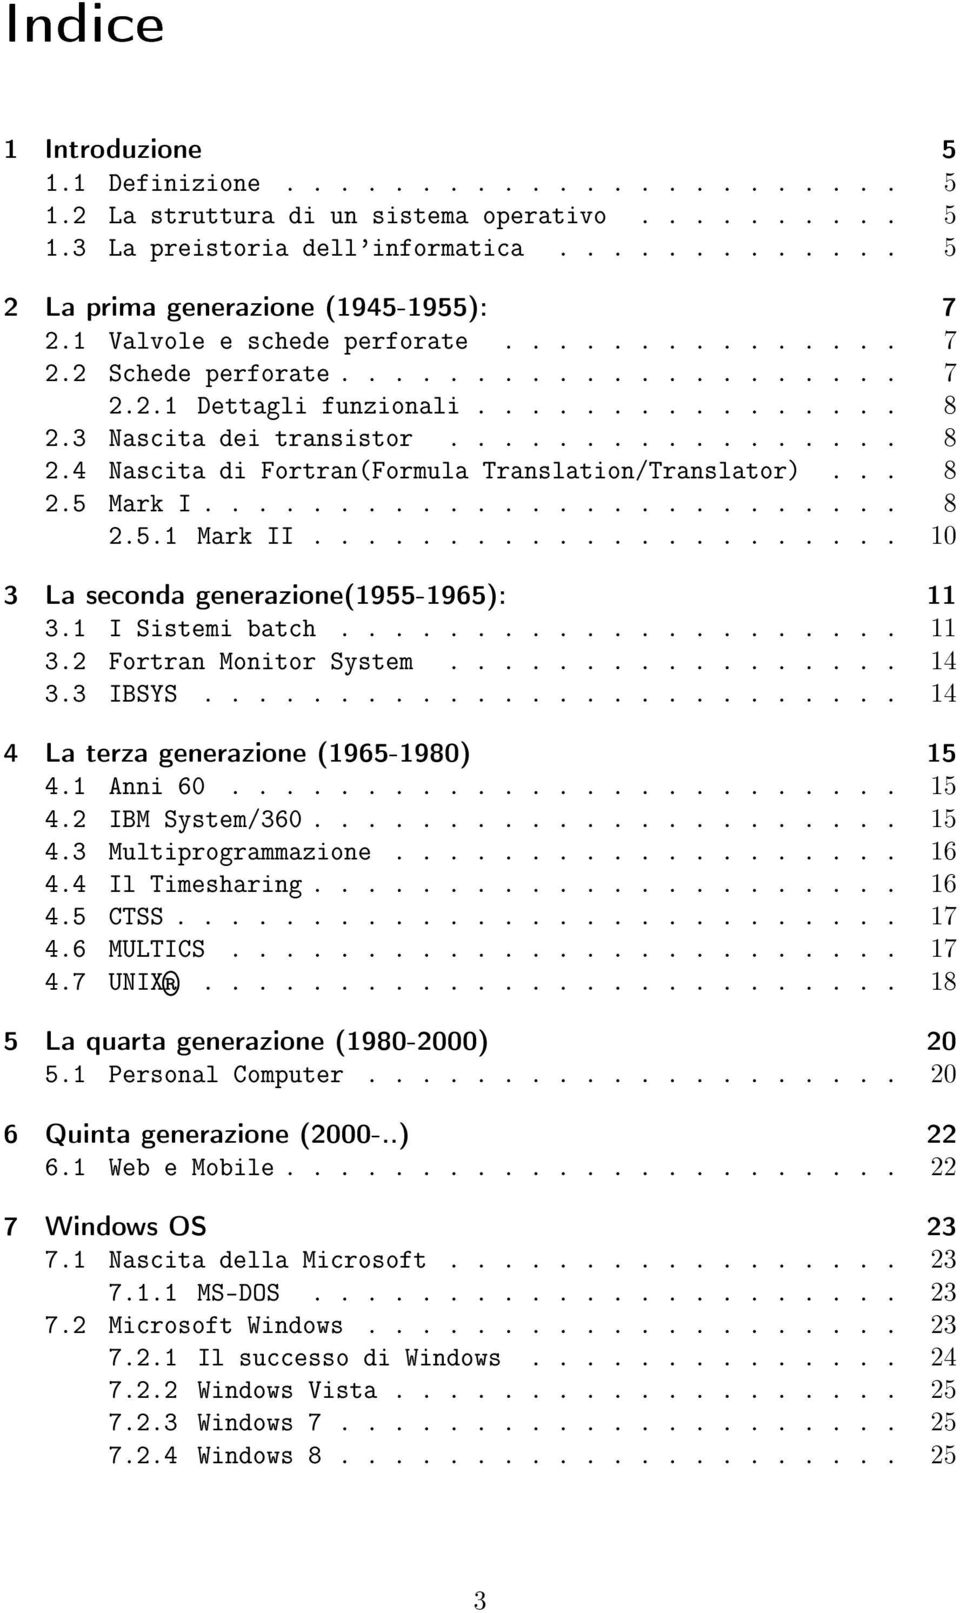 .. 8 2.5 Mark I.......................... 8 2.5.1 Mark II...................... 10 3 La seconda generazione(1955-1965): 11 3.1 I Sistemi batch..................... 11 3.2 Fortran Monitor System................. 14 3.